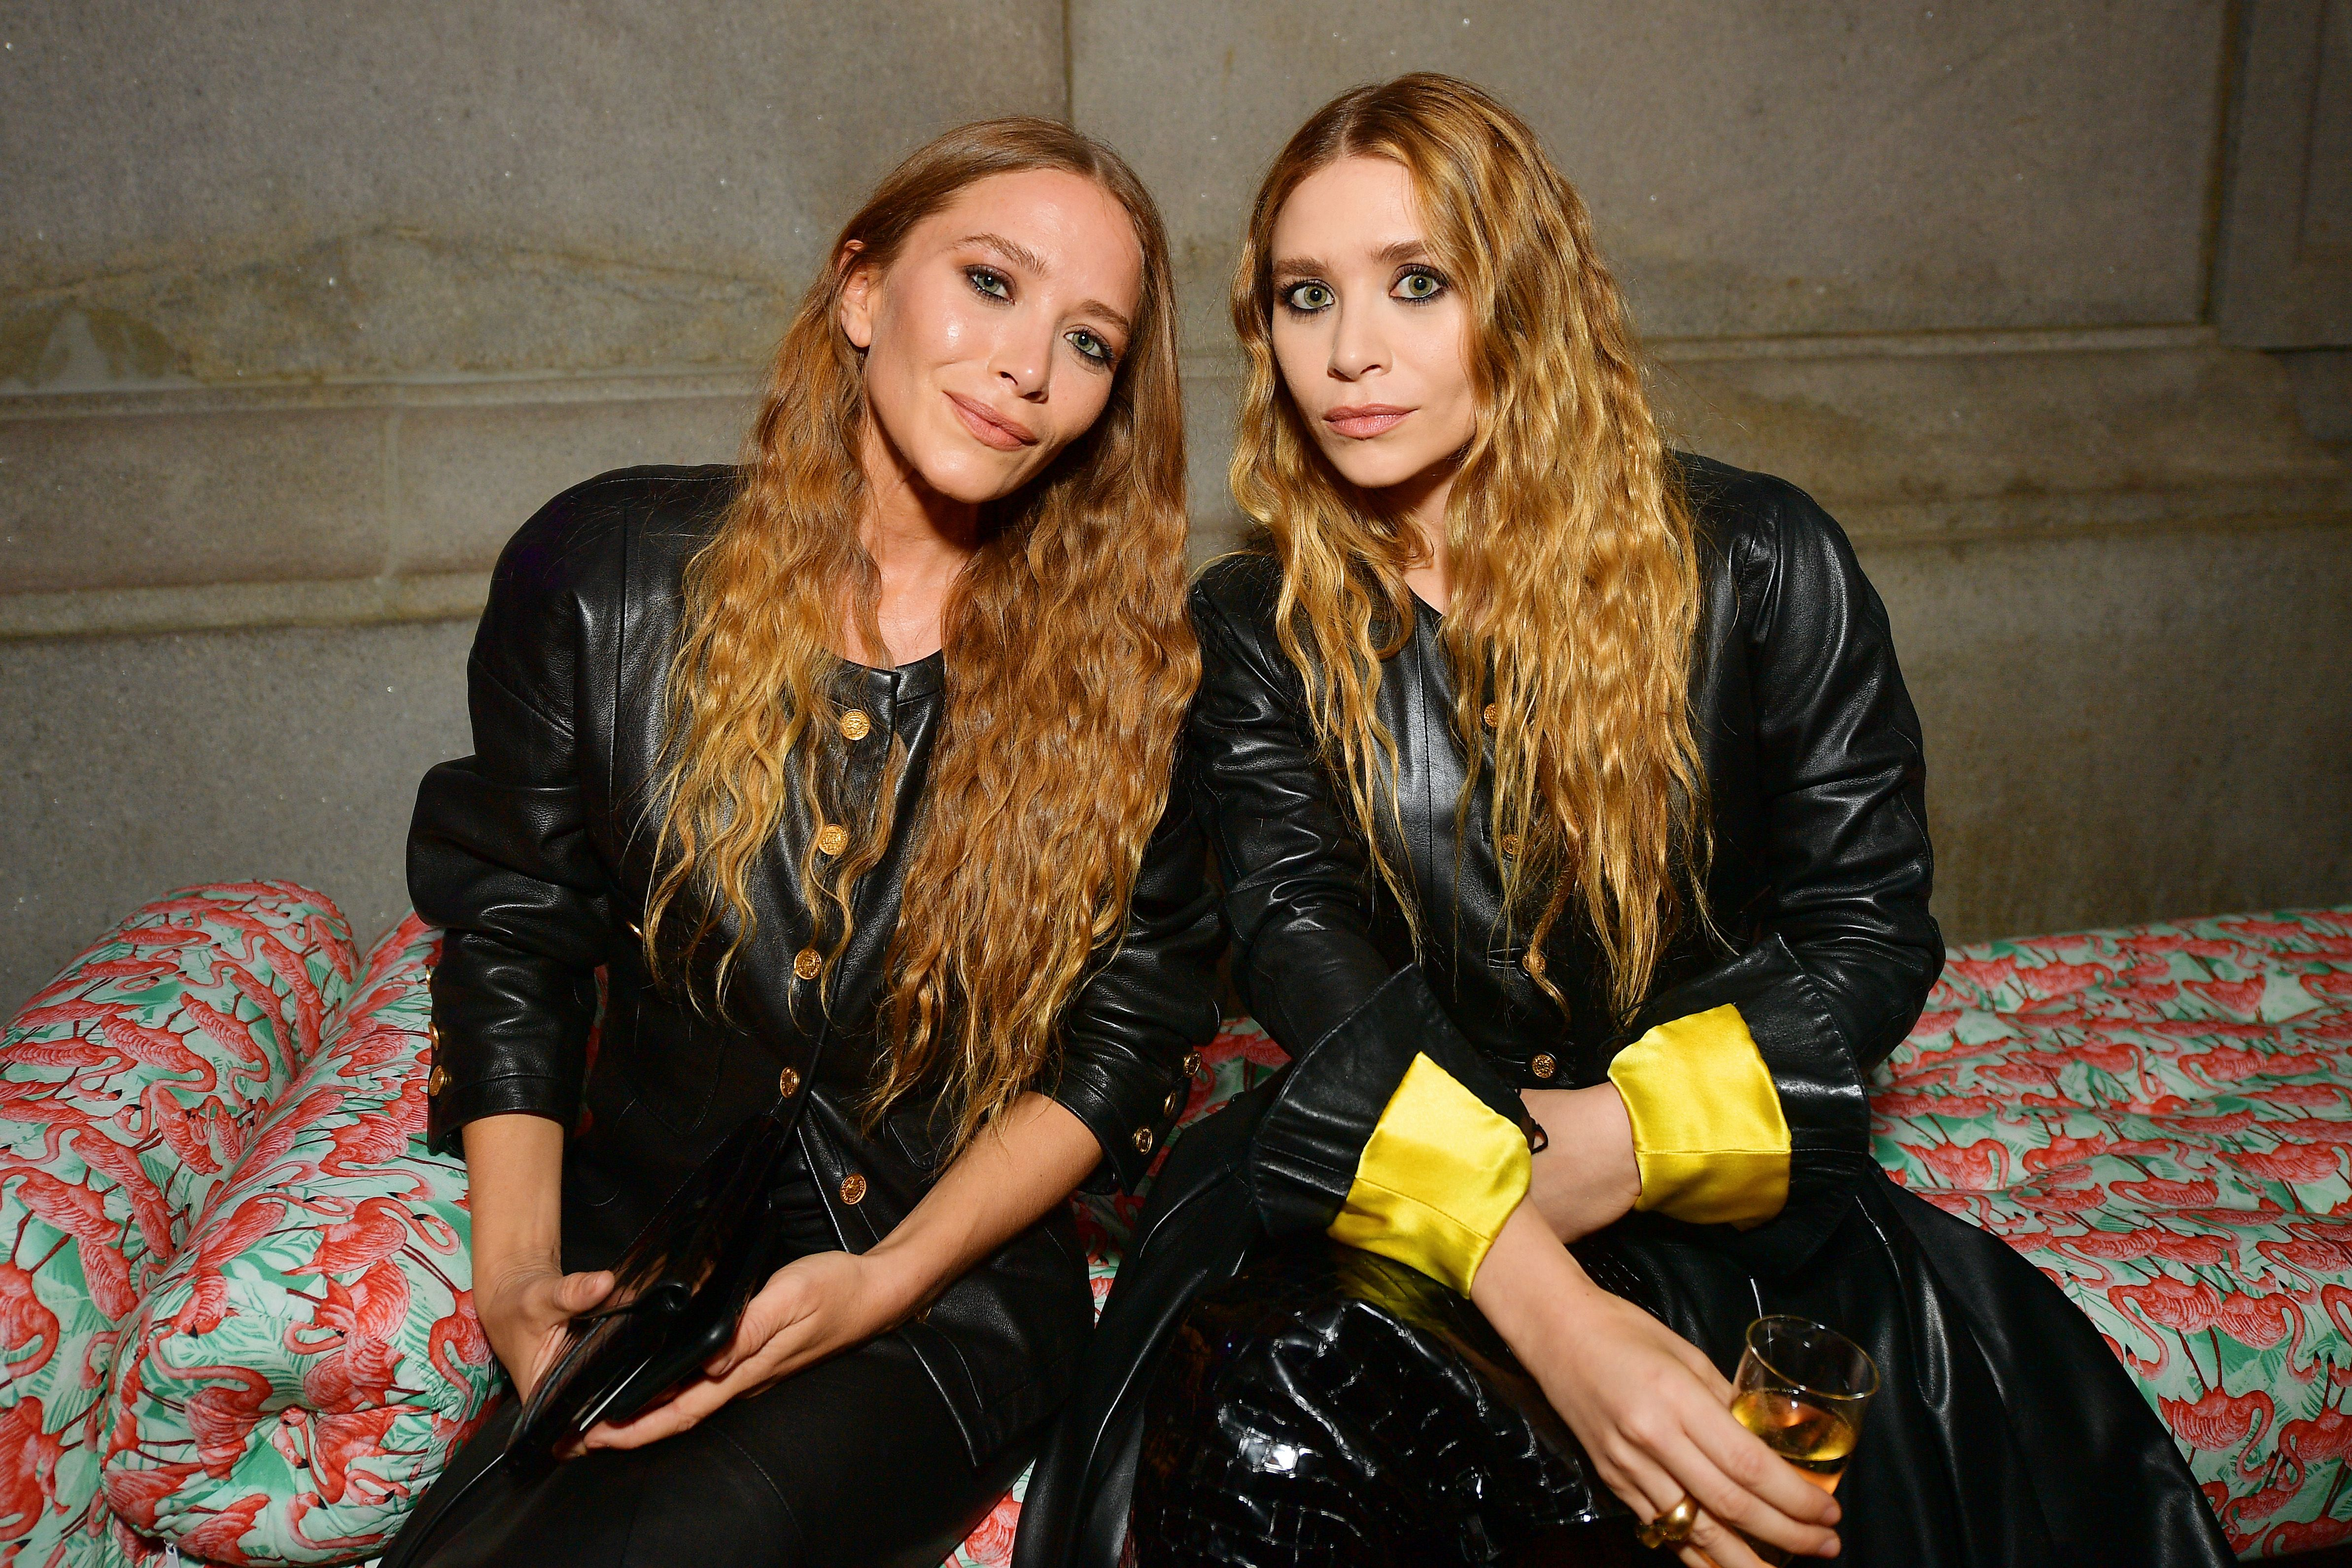 The Olsen Twins Have Given Their First Magazine Interview In Years